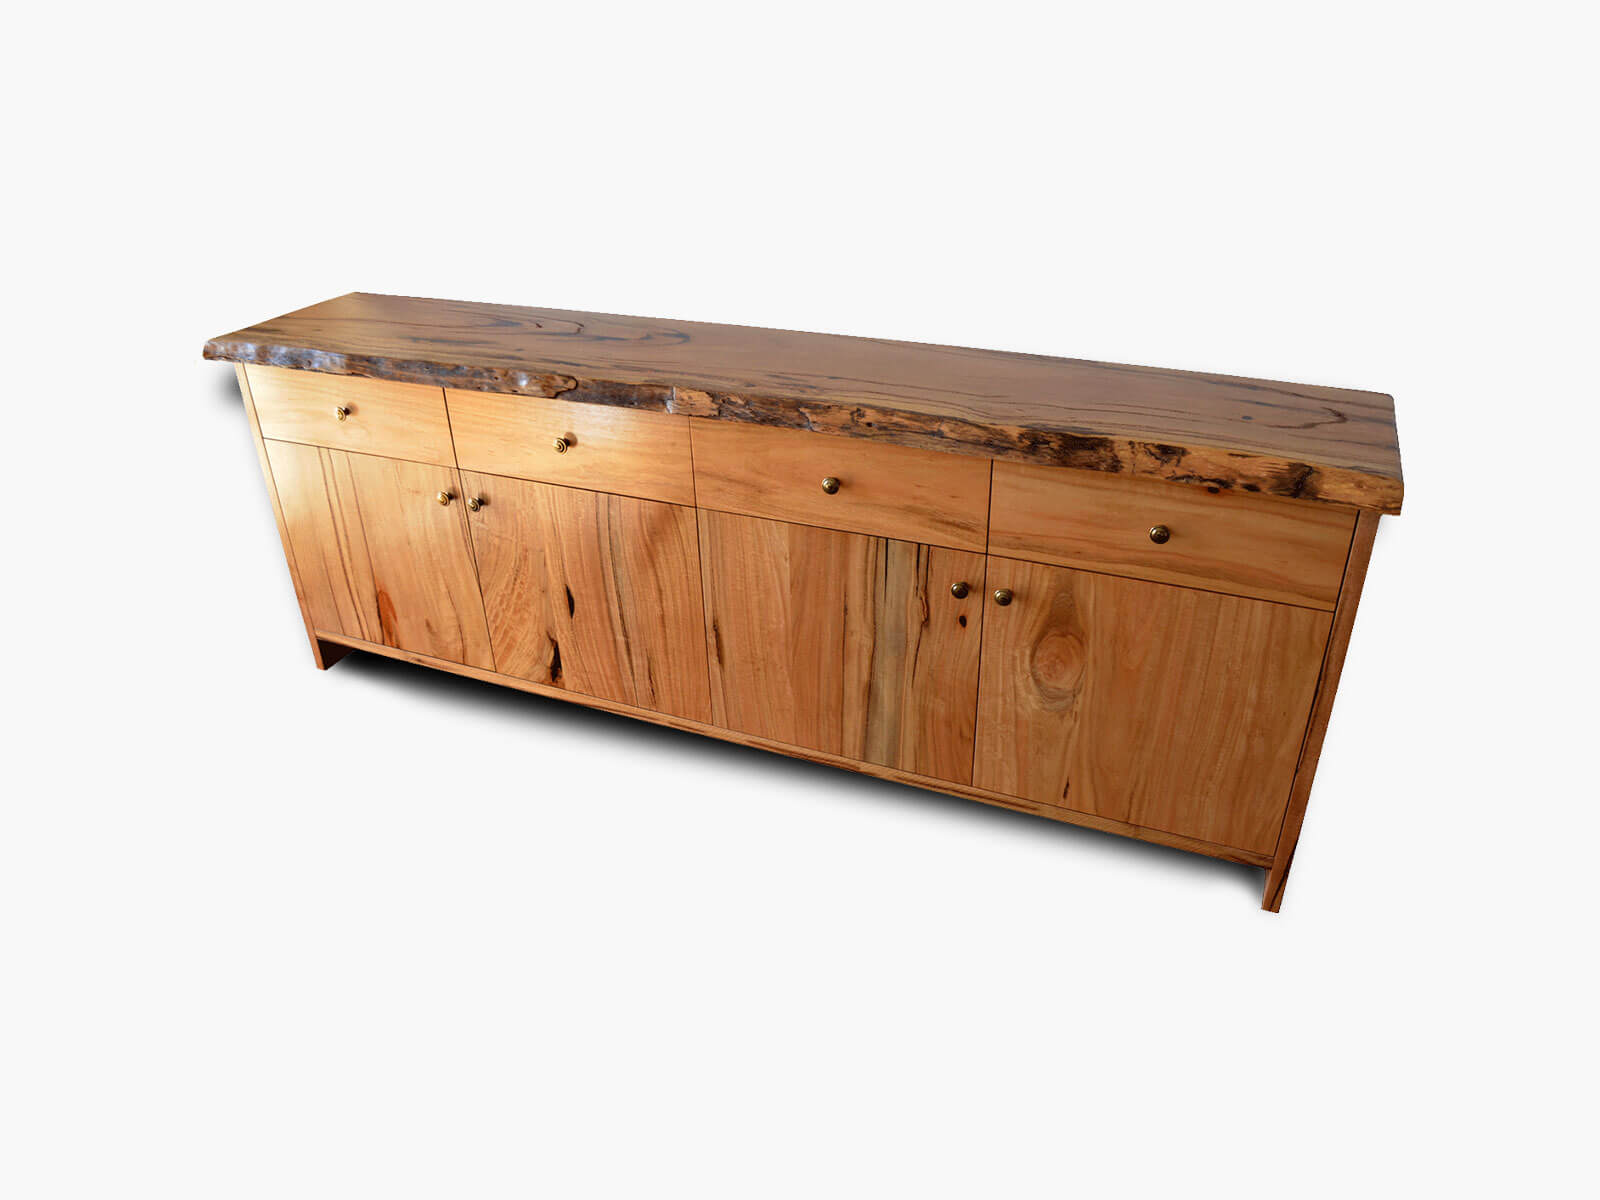 Coolbinia-Raw-Buffet Timber Furniture